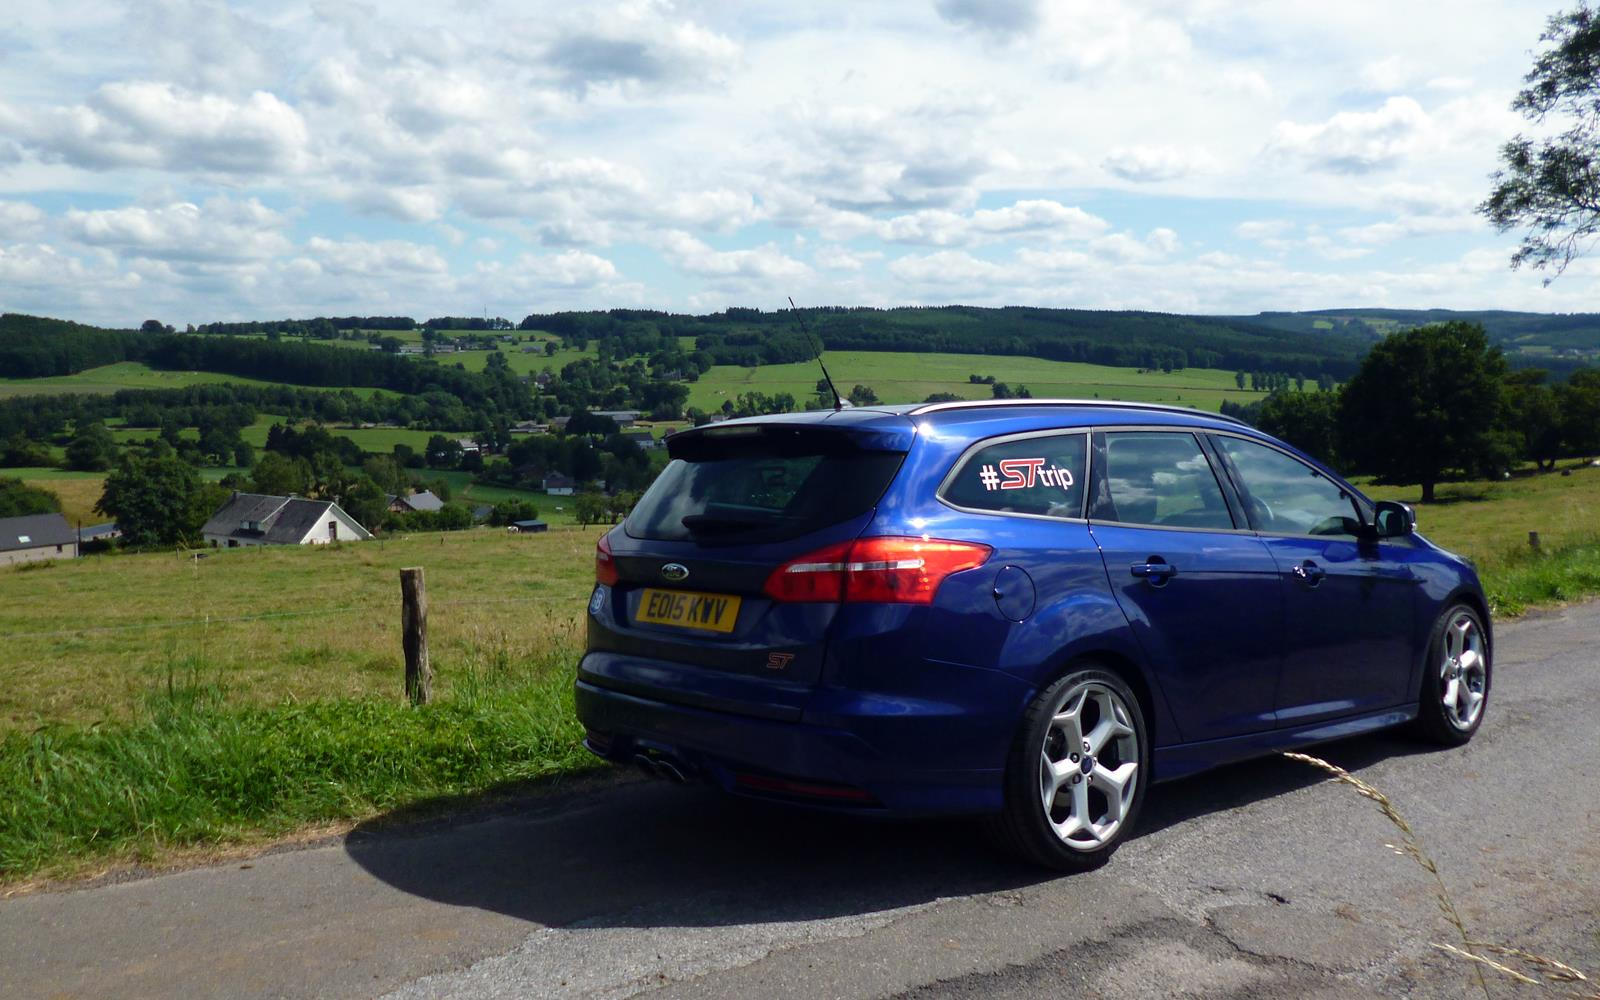 Ford Focus ST Road Trip with Jonny Edge 2015 6